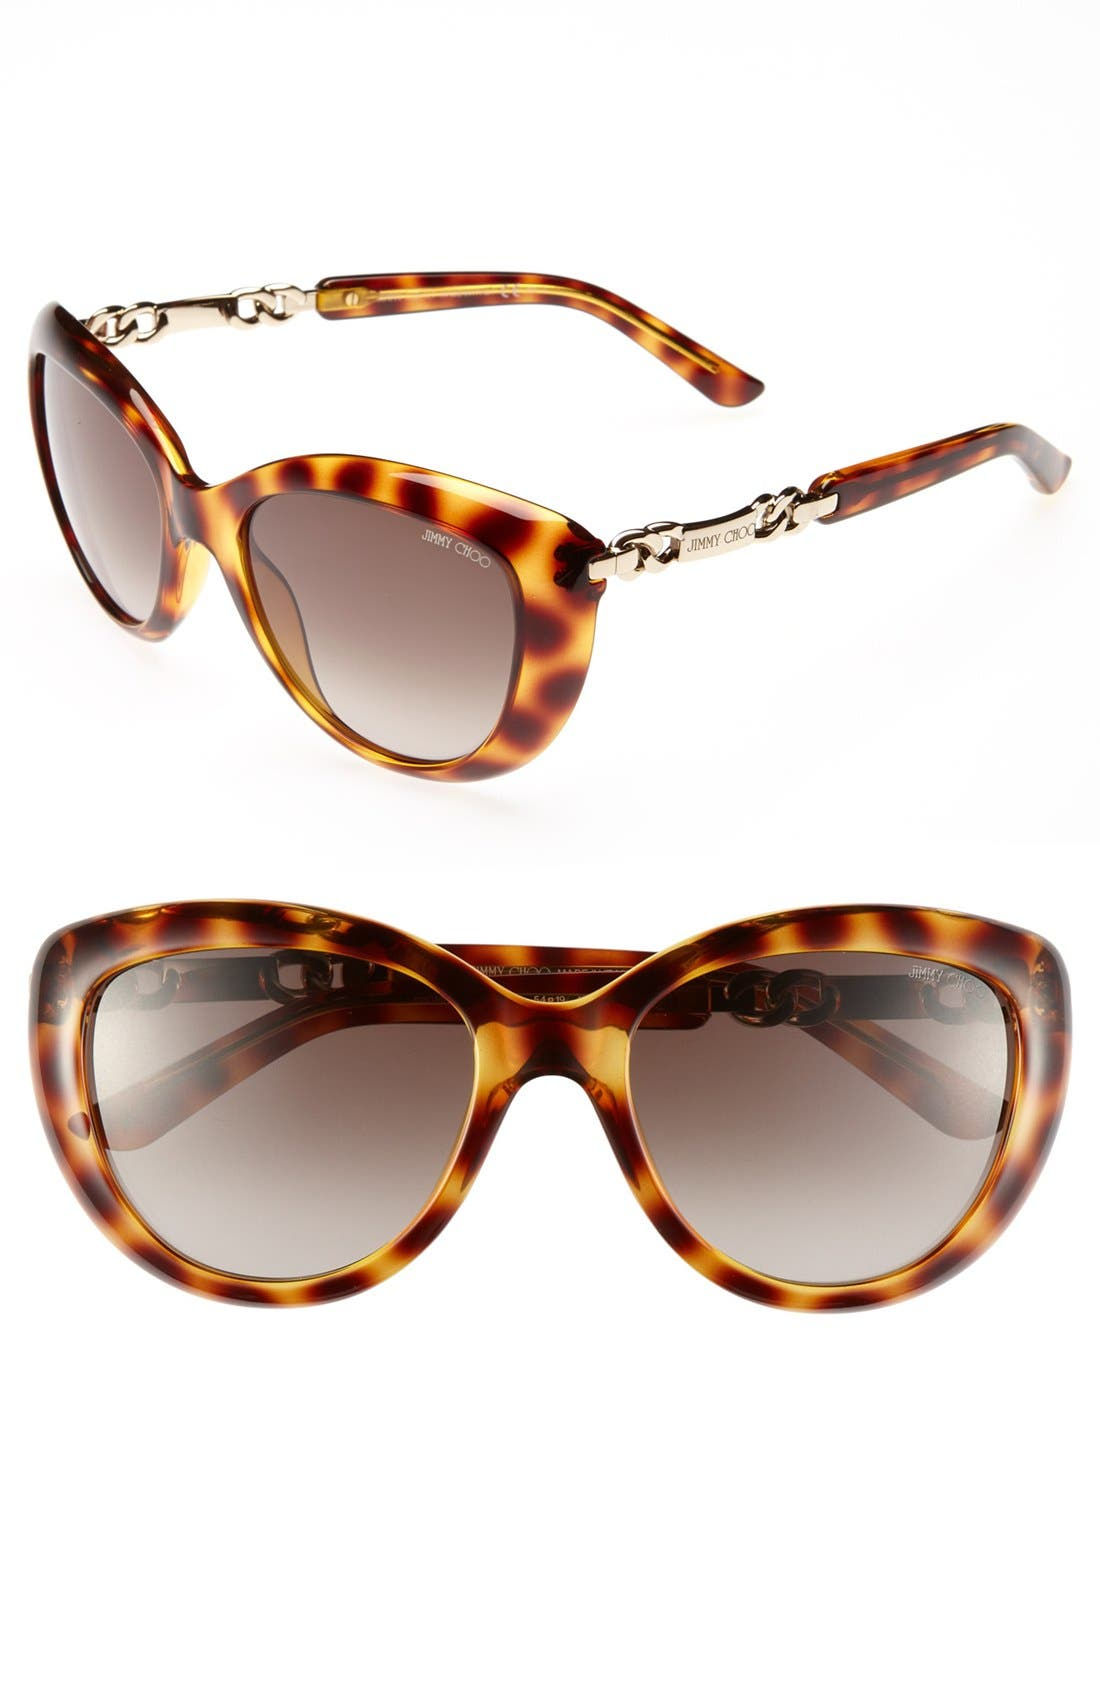 Main Image - Jimmy Choo 'Wigmore' 54mm Sunglasses